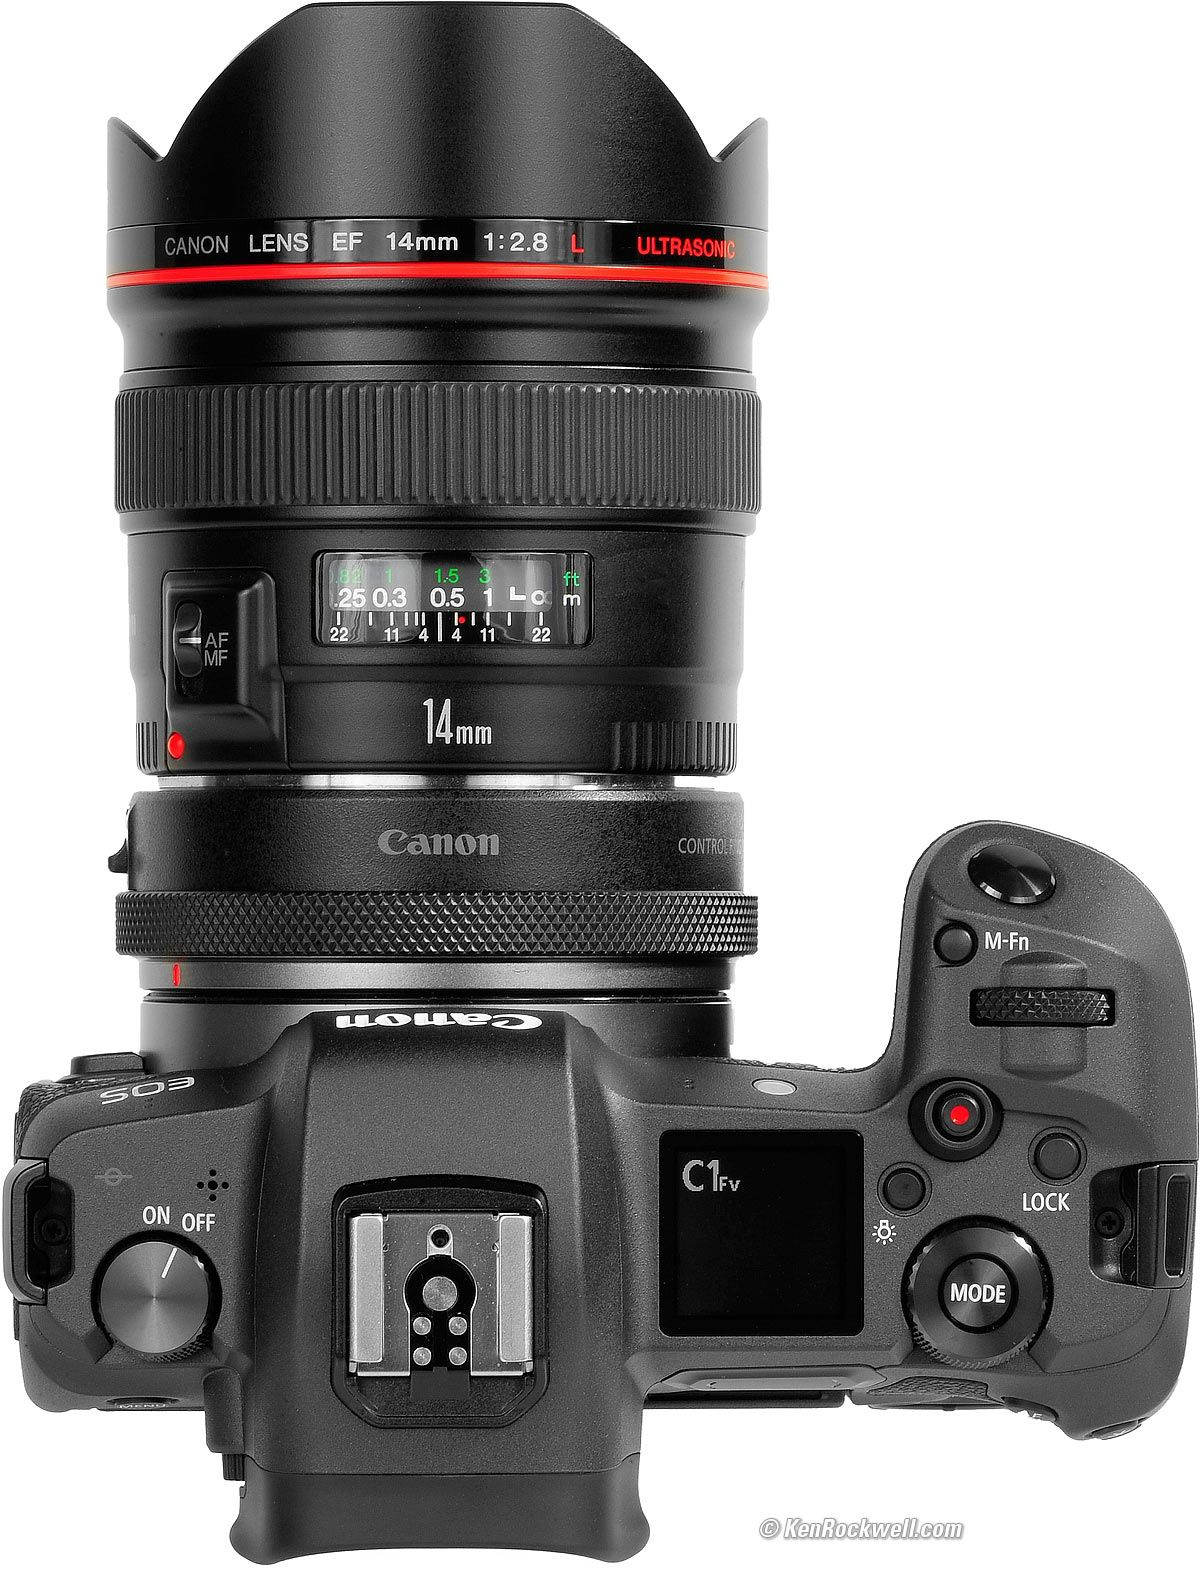 Canon Eos R And Ef 14mm F 2 8 L On Ef Adapter Canon Camera Photography Canon Eos R Canon Camera